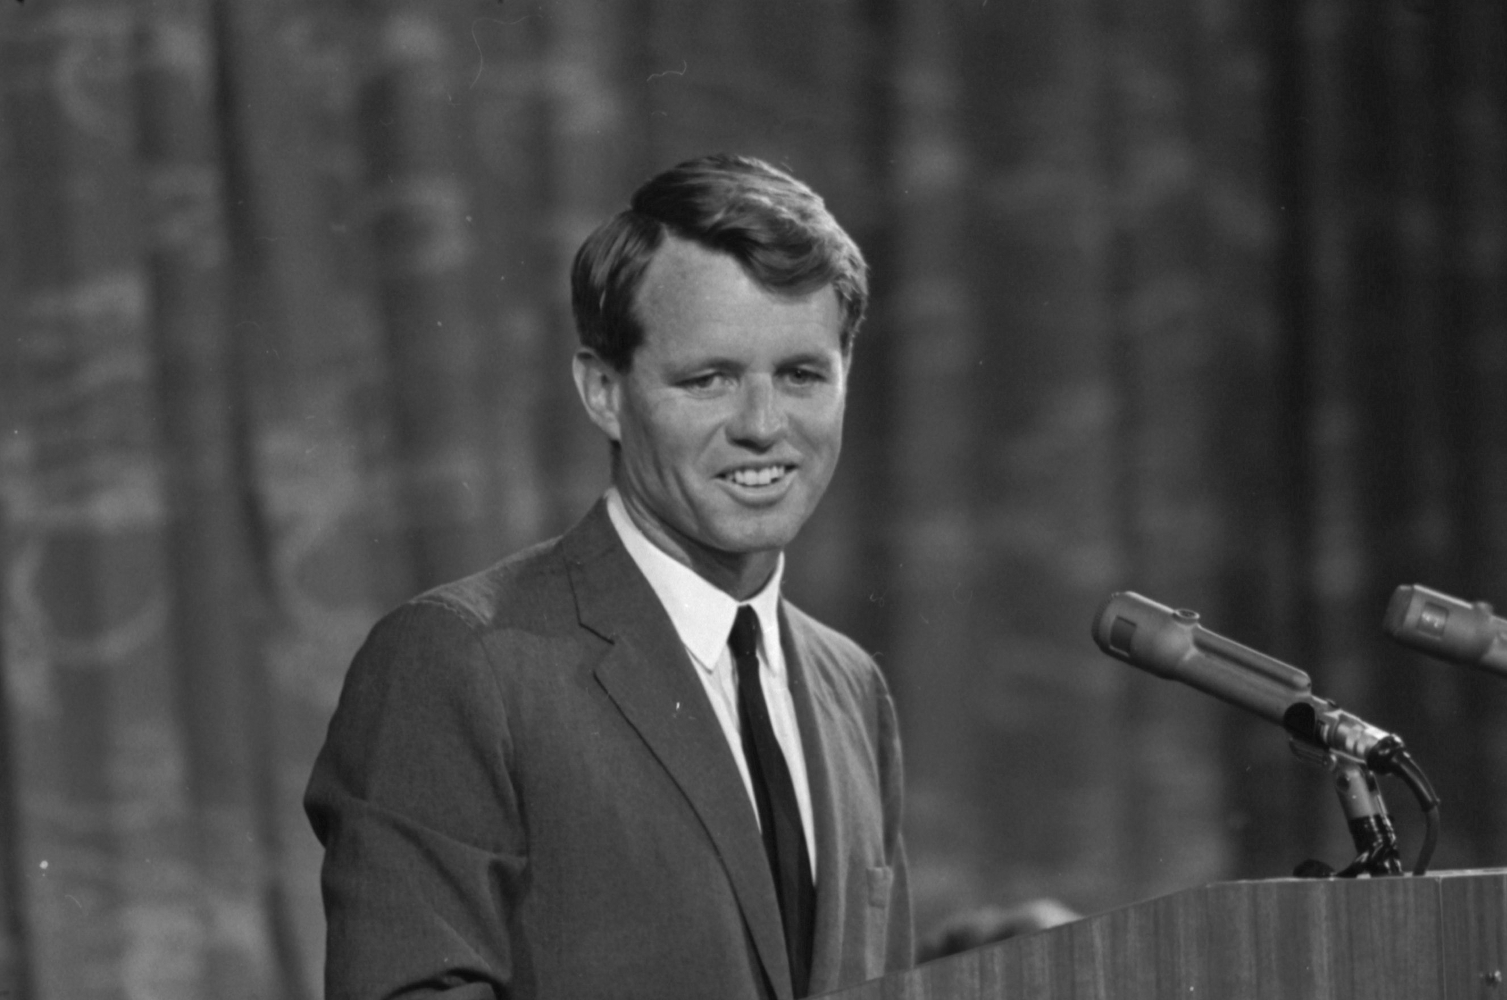 Robert Francis Kennedy